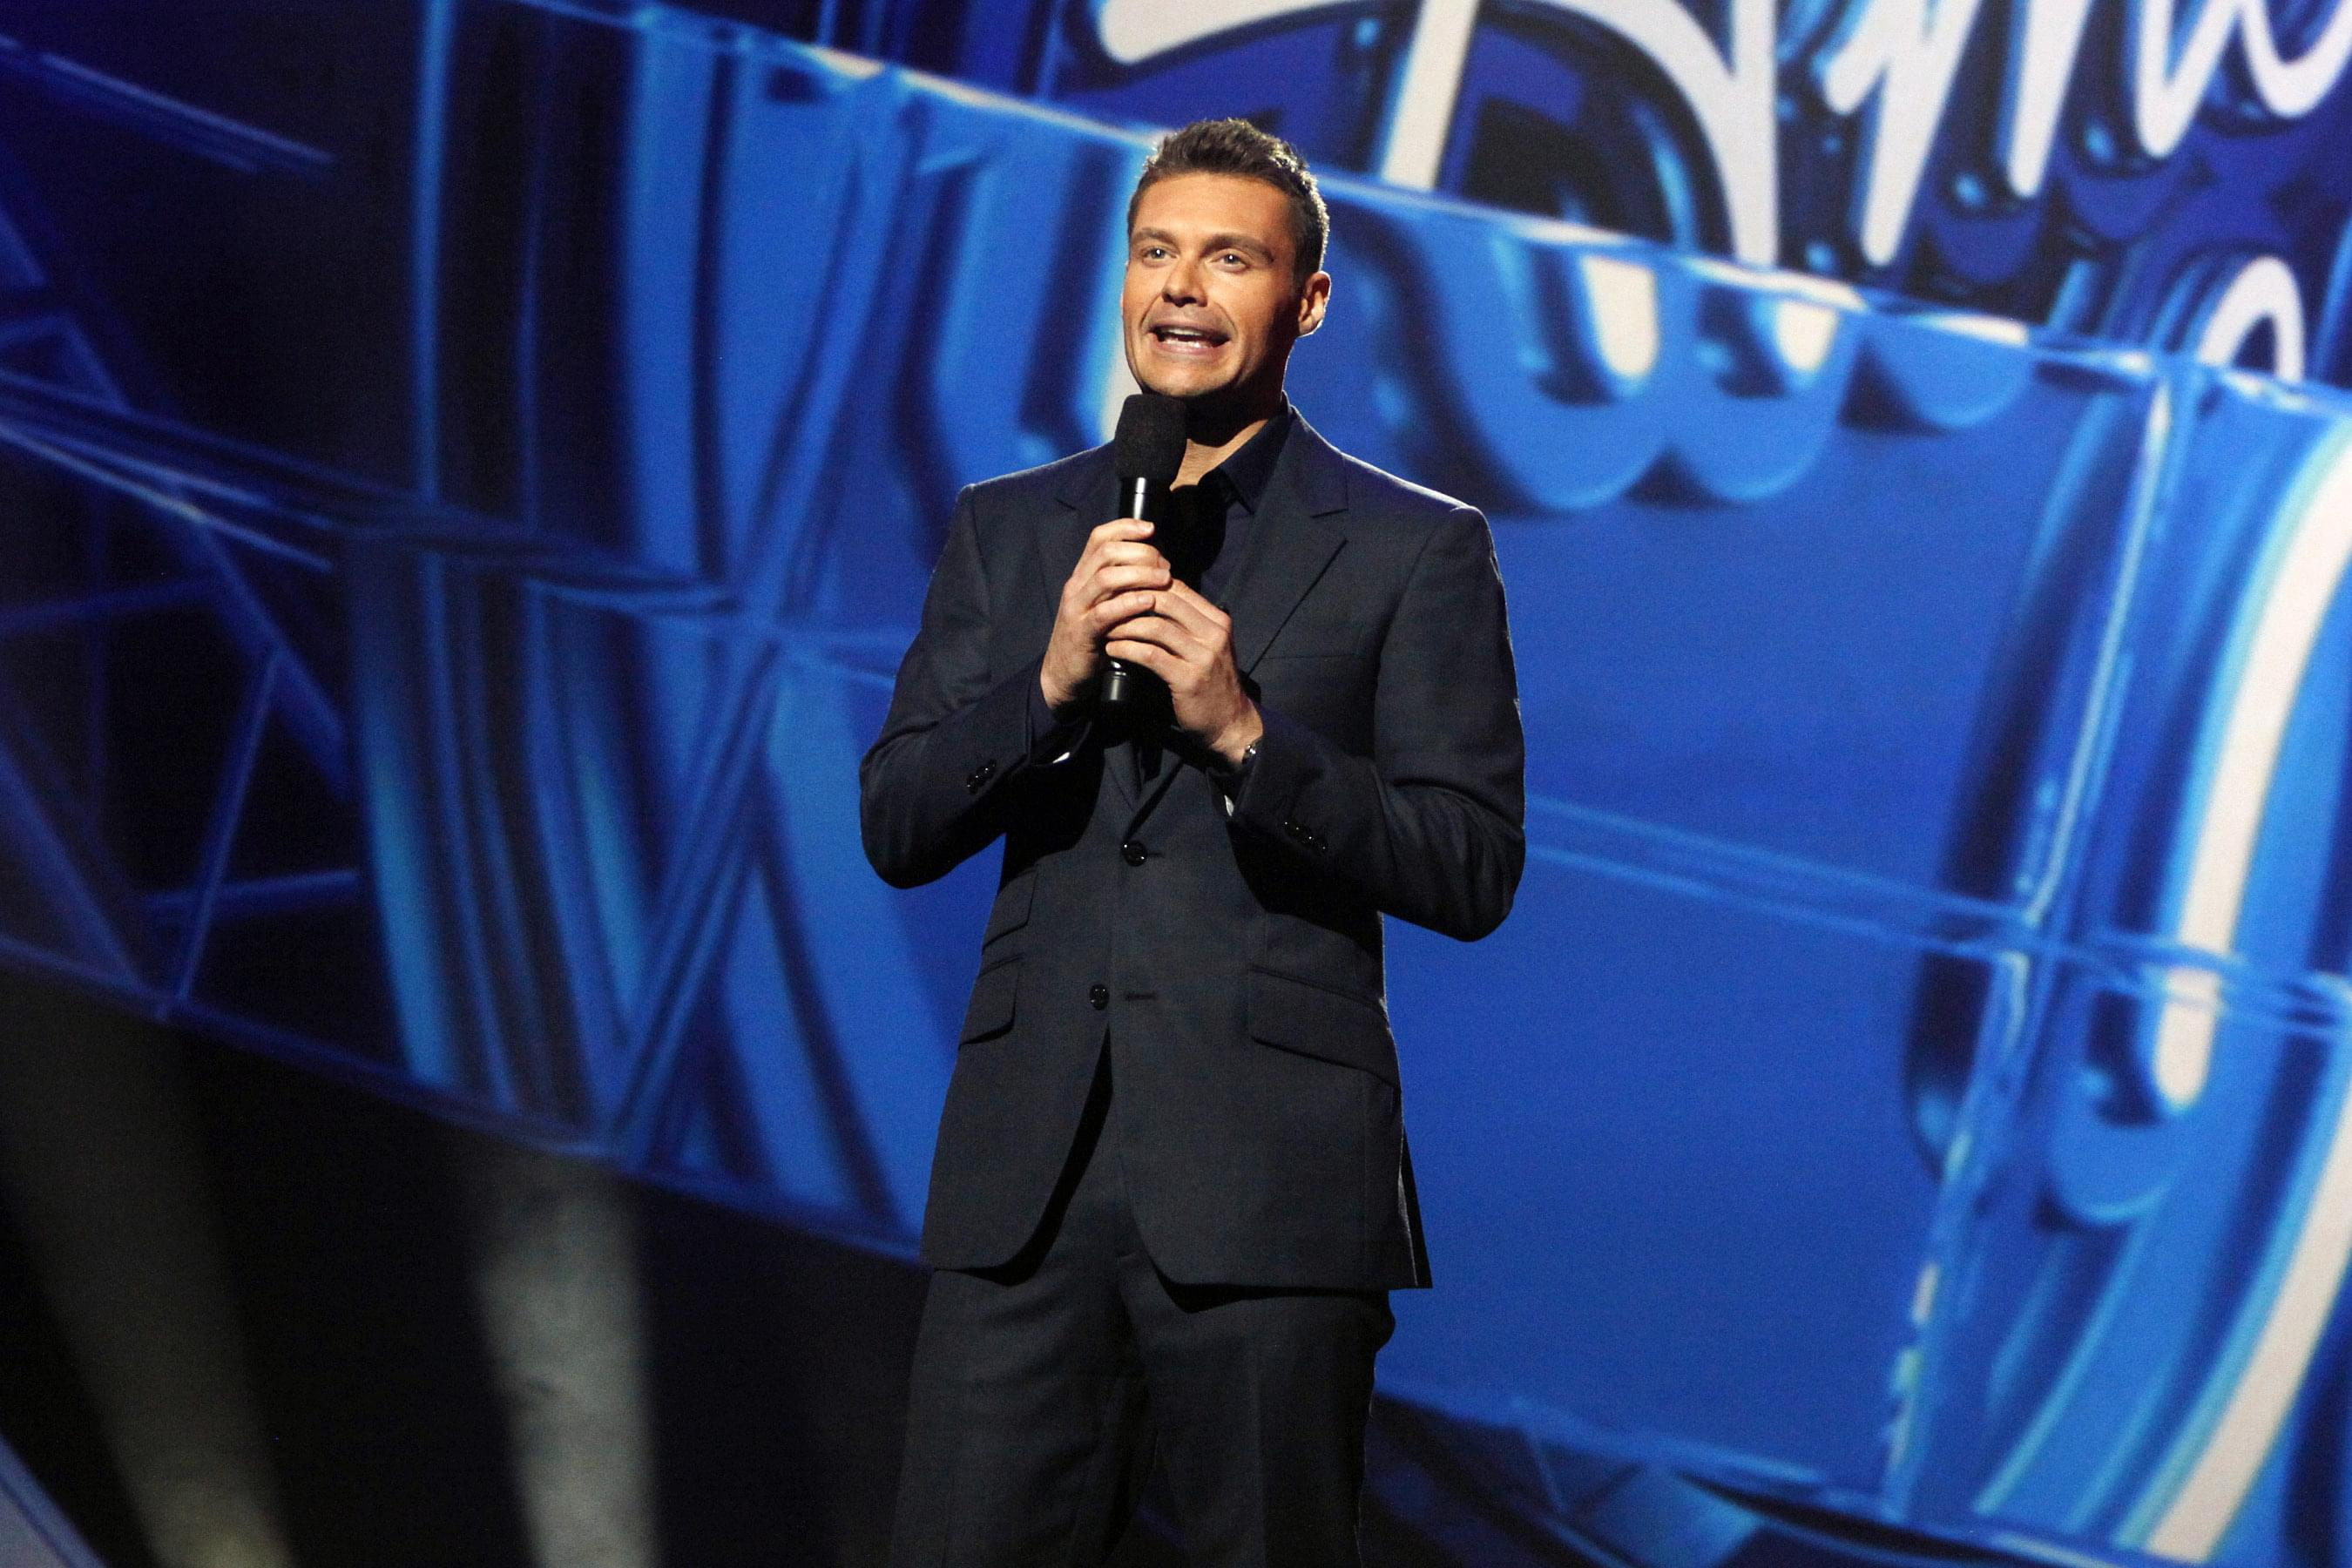 Ryan Seacrest Didn't 'Have Any Kind of Stroke' During American Idol, Rep Says